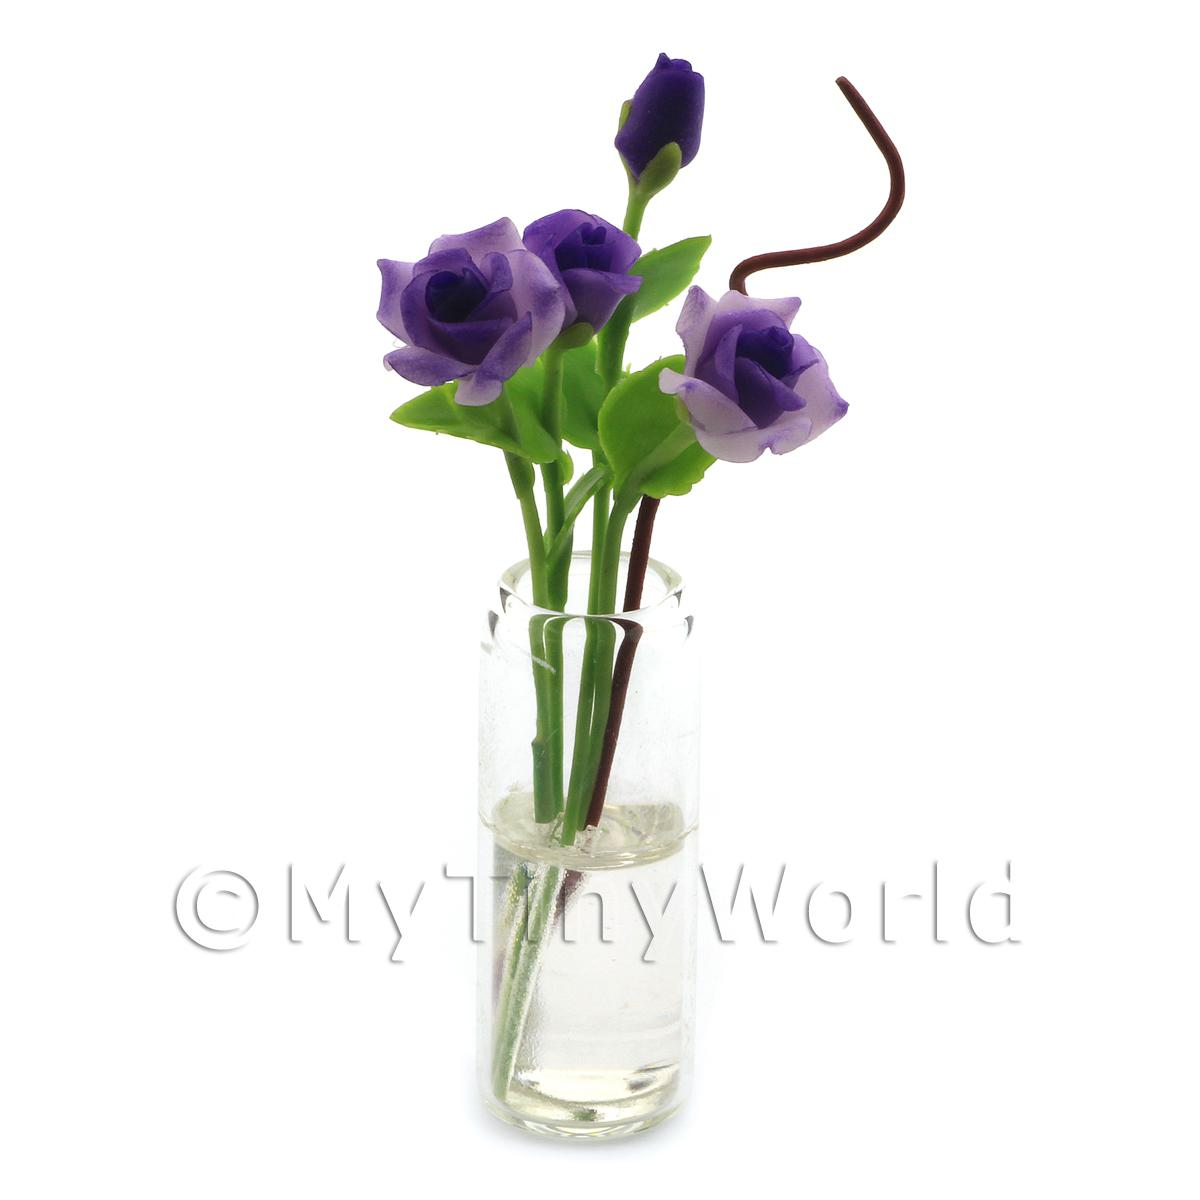 4 Miniature Long Stemmed Purple Roses in a Glass Vase